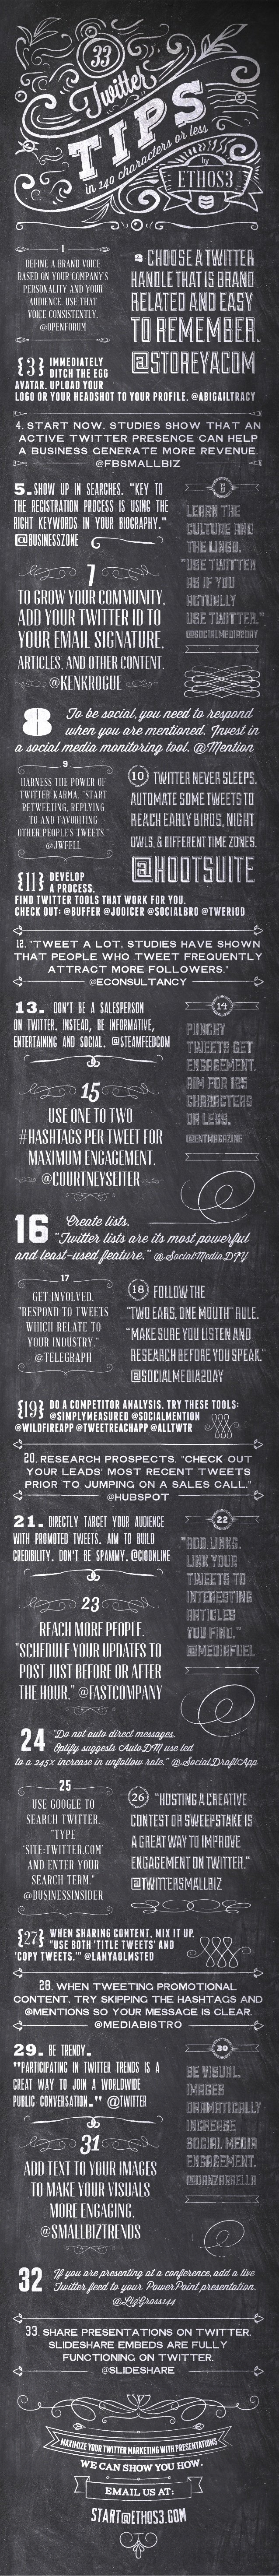 #Twitter Tips in 140 Characters (Or Less) #Infographics